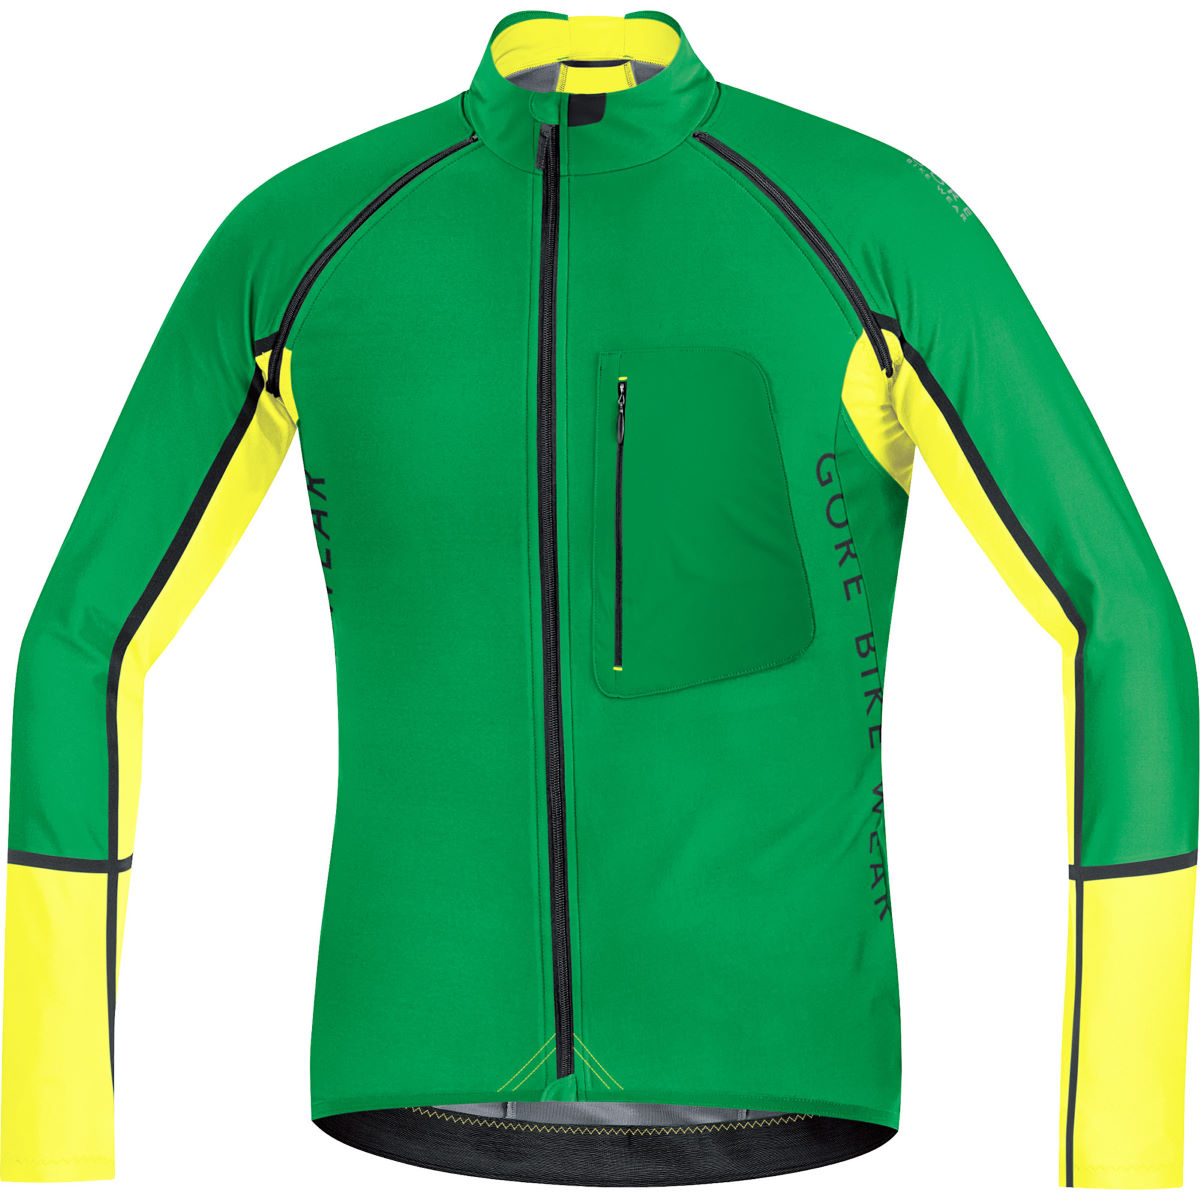 Chaqueta convertible Gore Bike Wear Alp-X Windstopper Soft Shell - Cortavientos - ciclismo